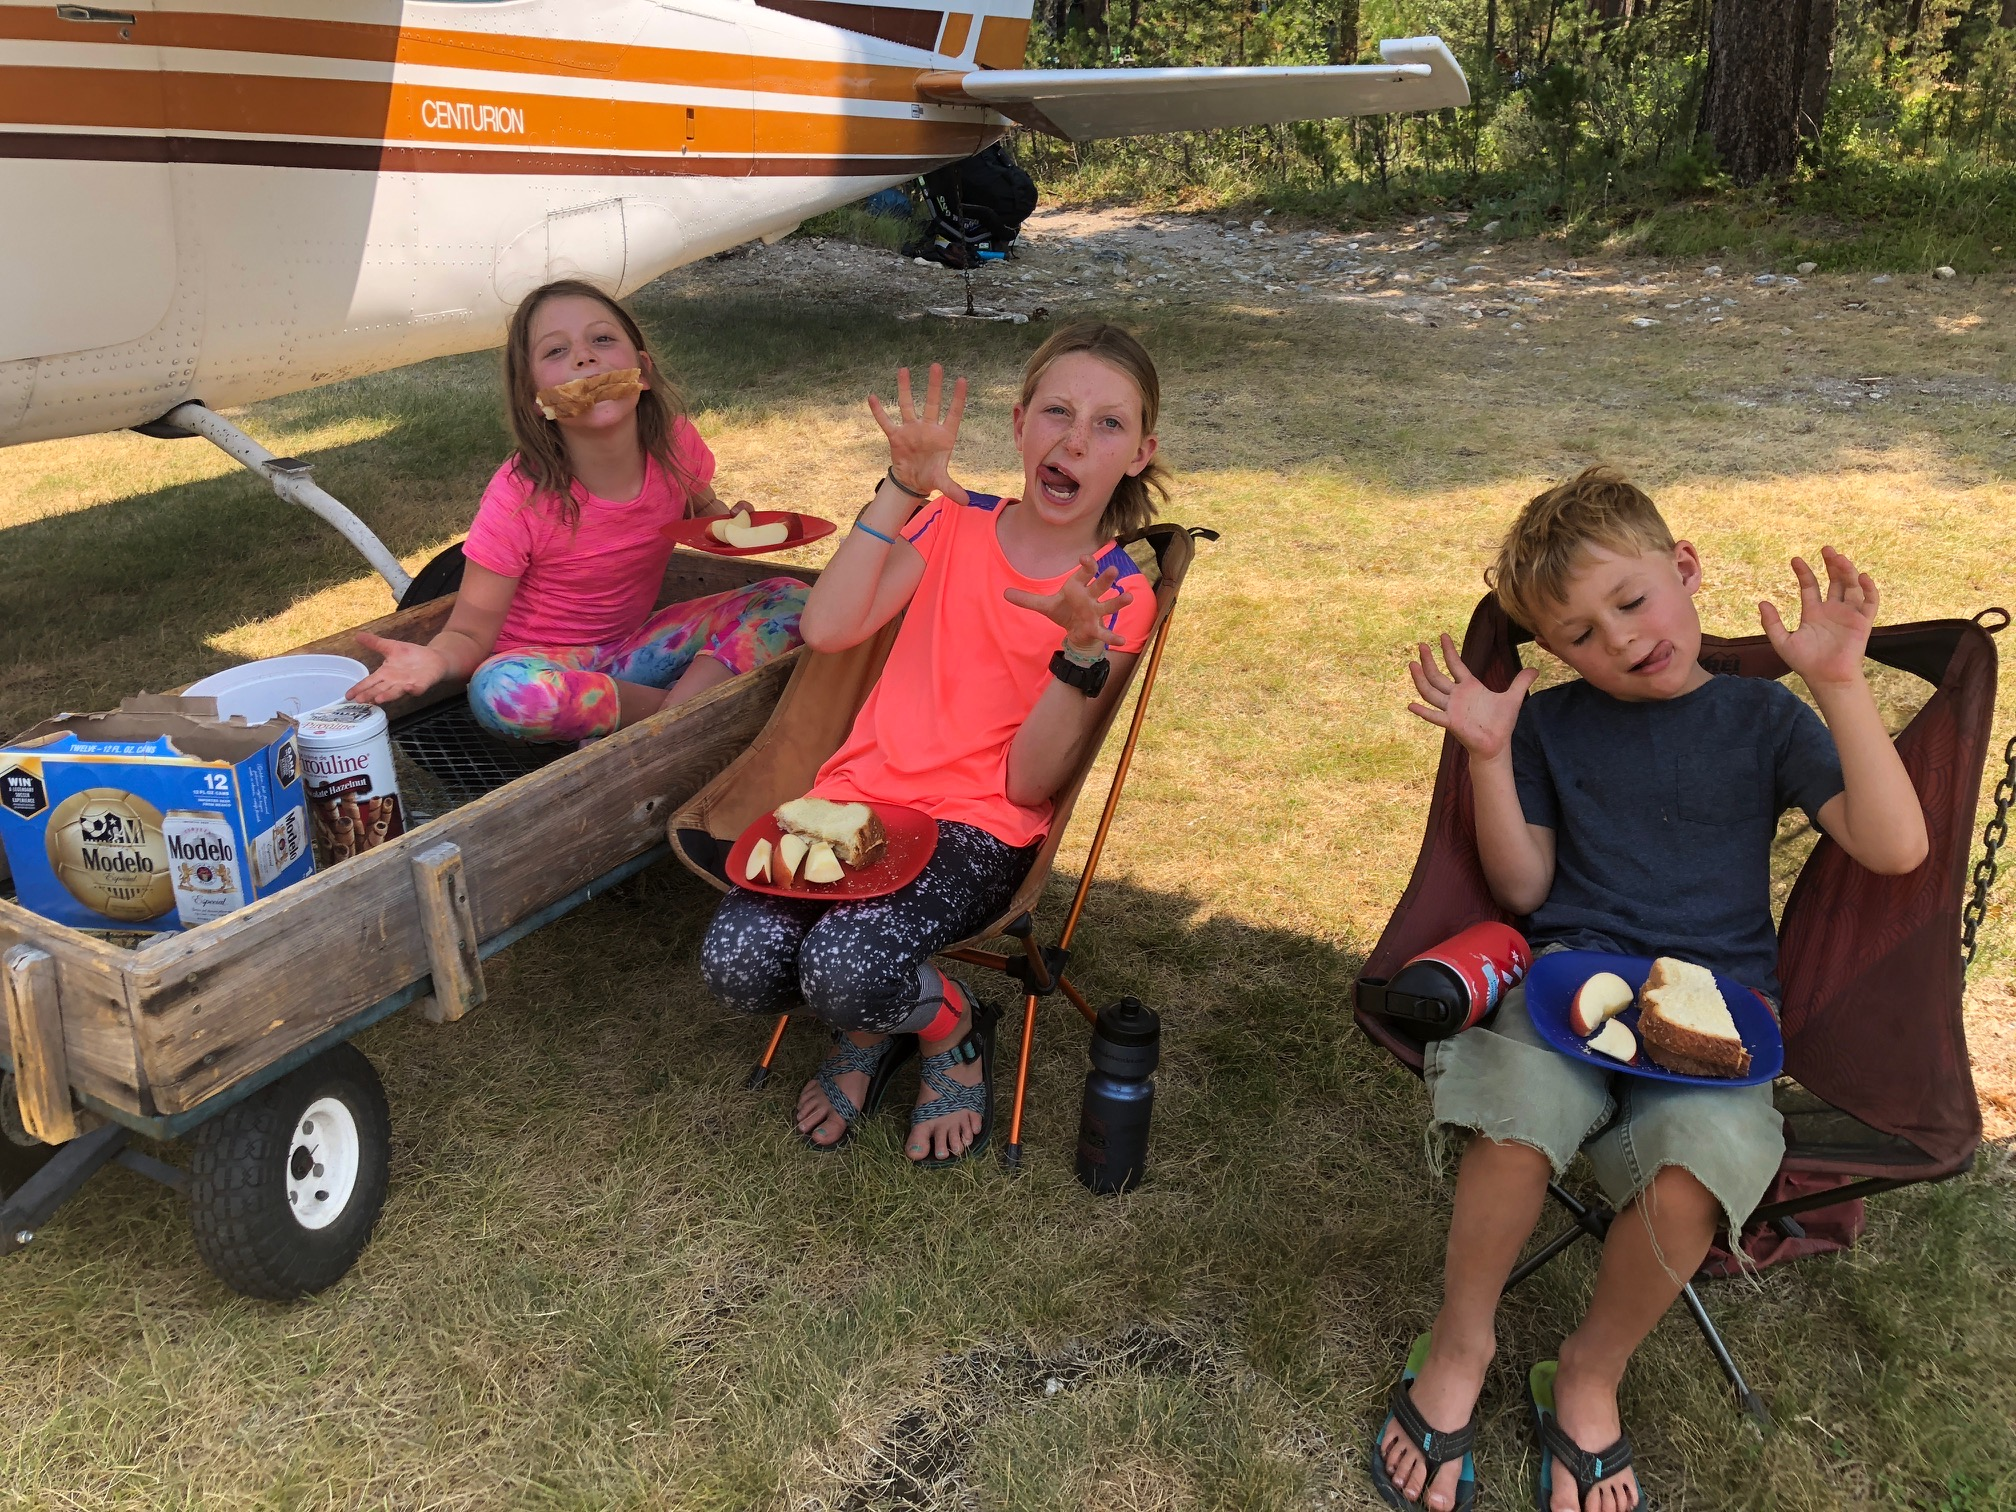 Being goofy while having lunch in the shade of the wing of the plane